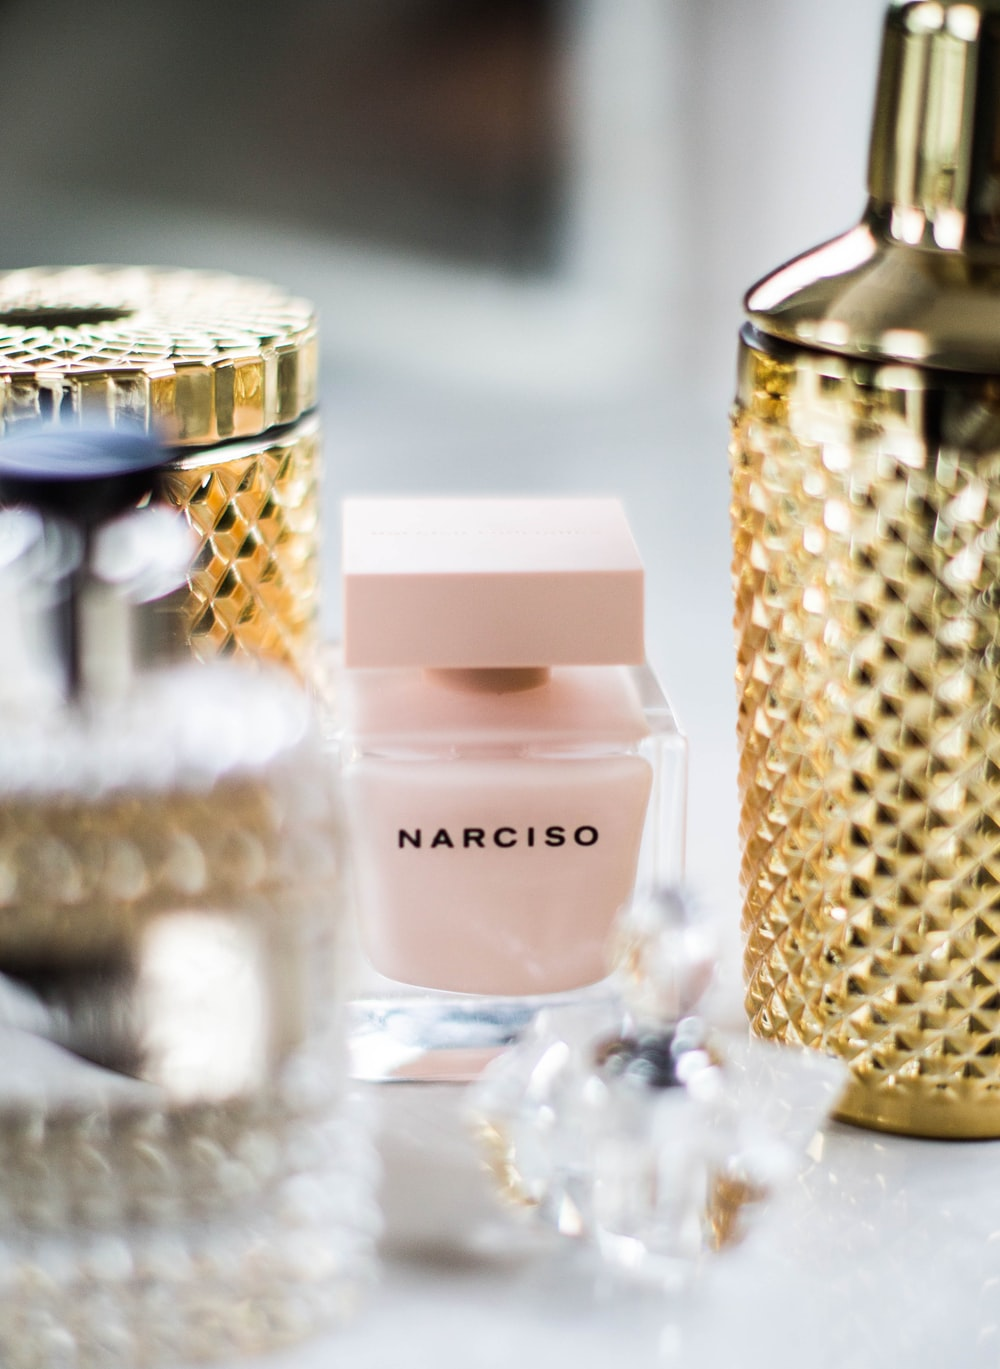 Narciso perfume bottle